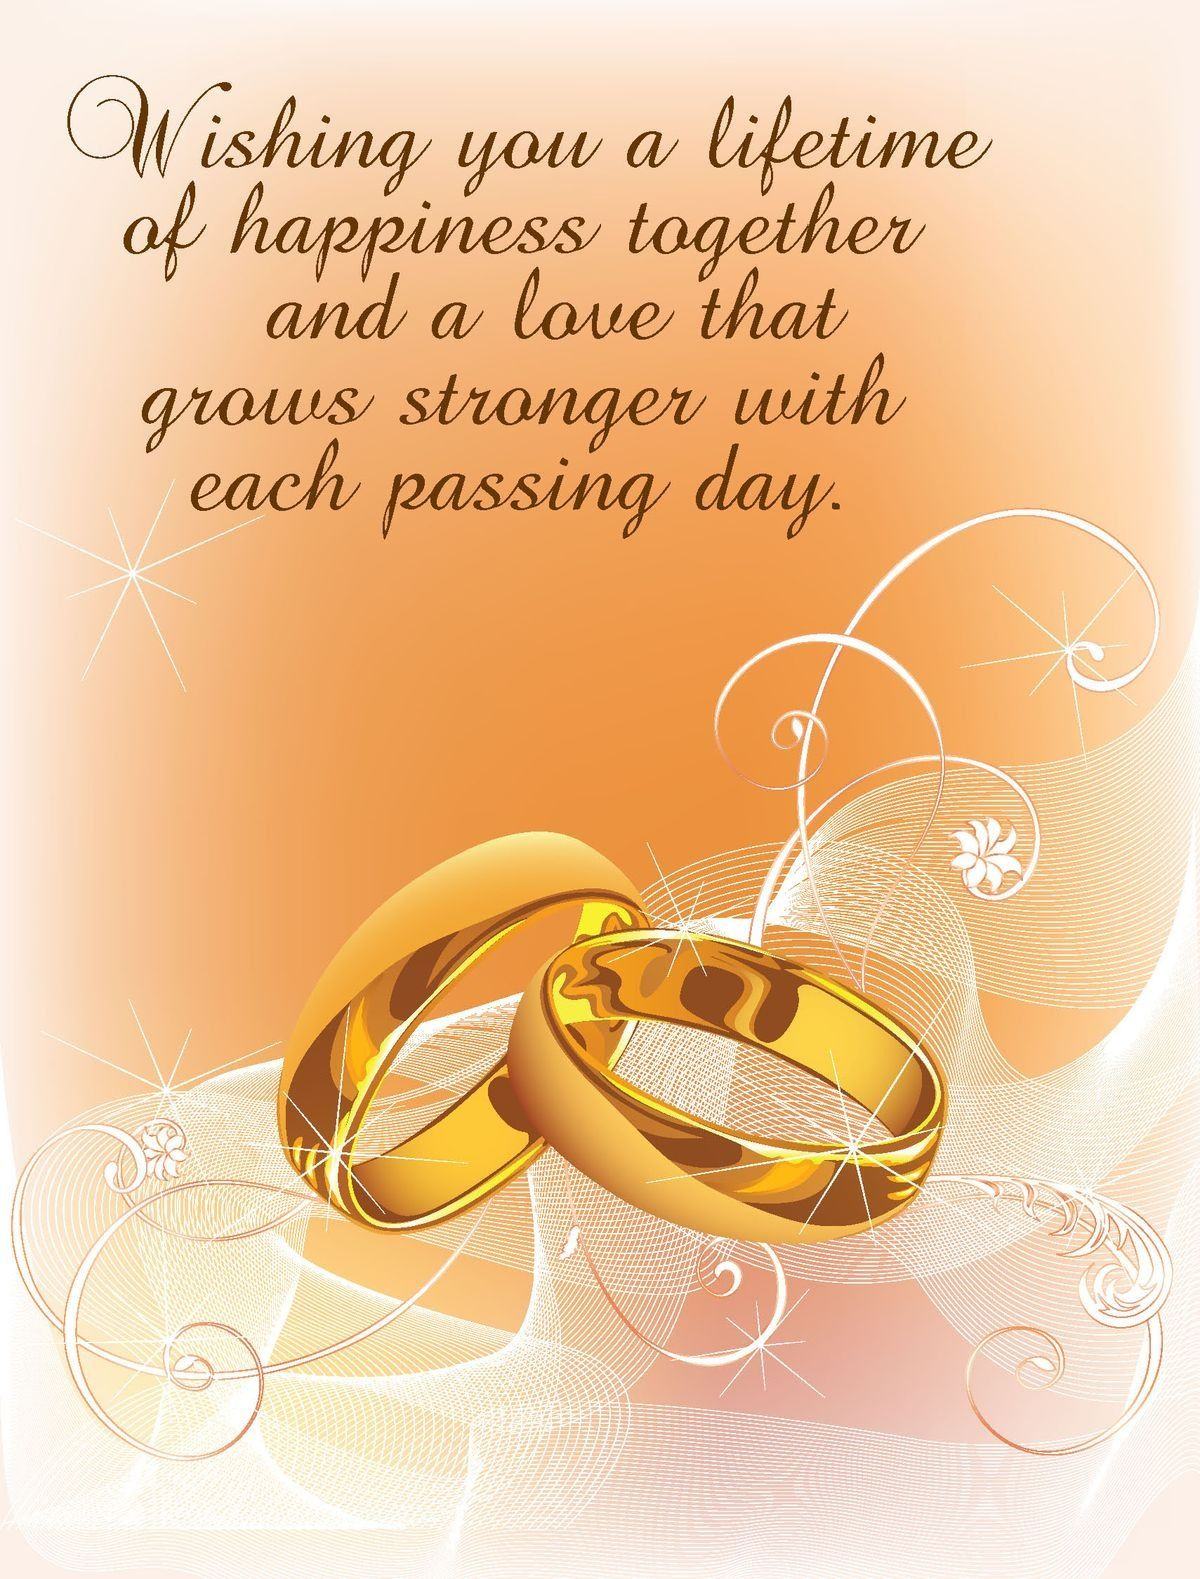 Happy And Funny Wedding Wishes For On A Card To A Friend Or Bride The Best Happy Birthday Wishes Quotes And Images To Celebrate This Anniversary